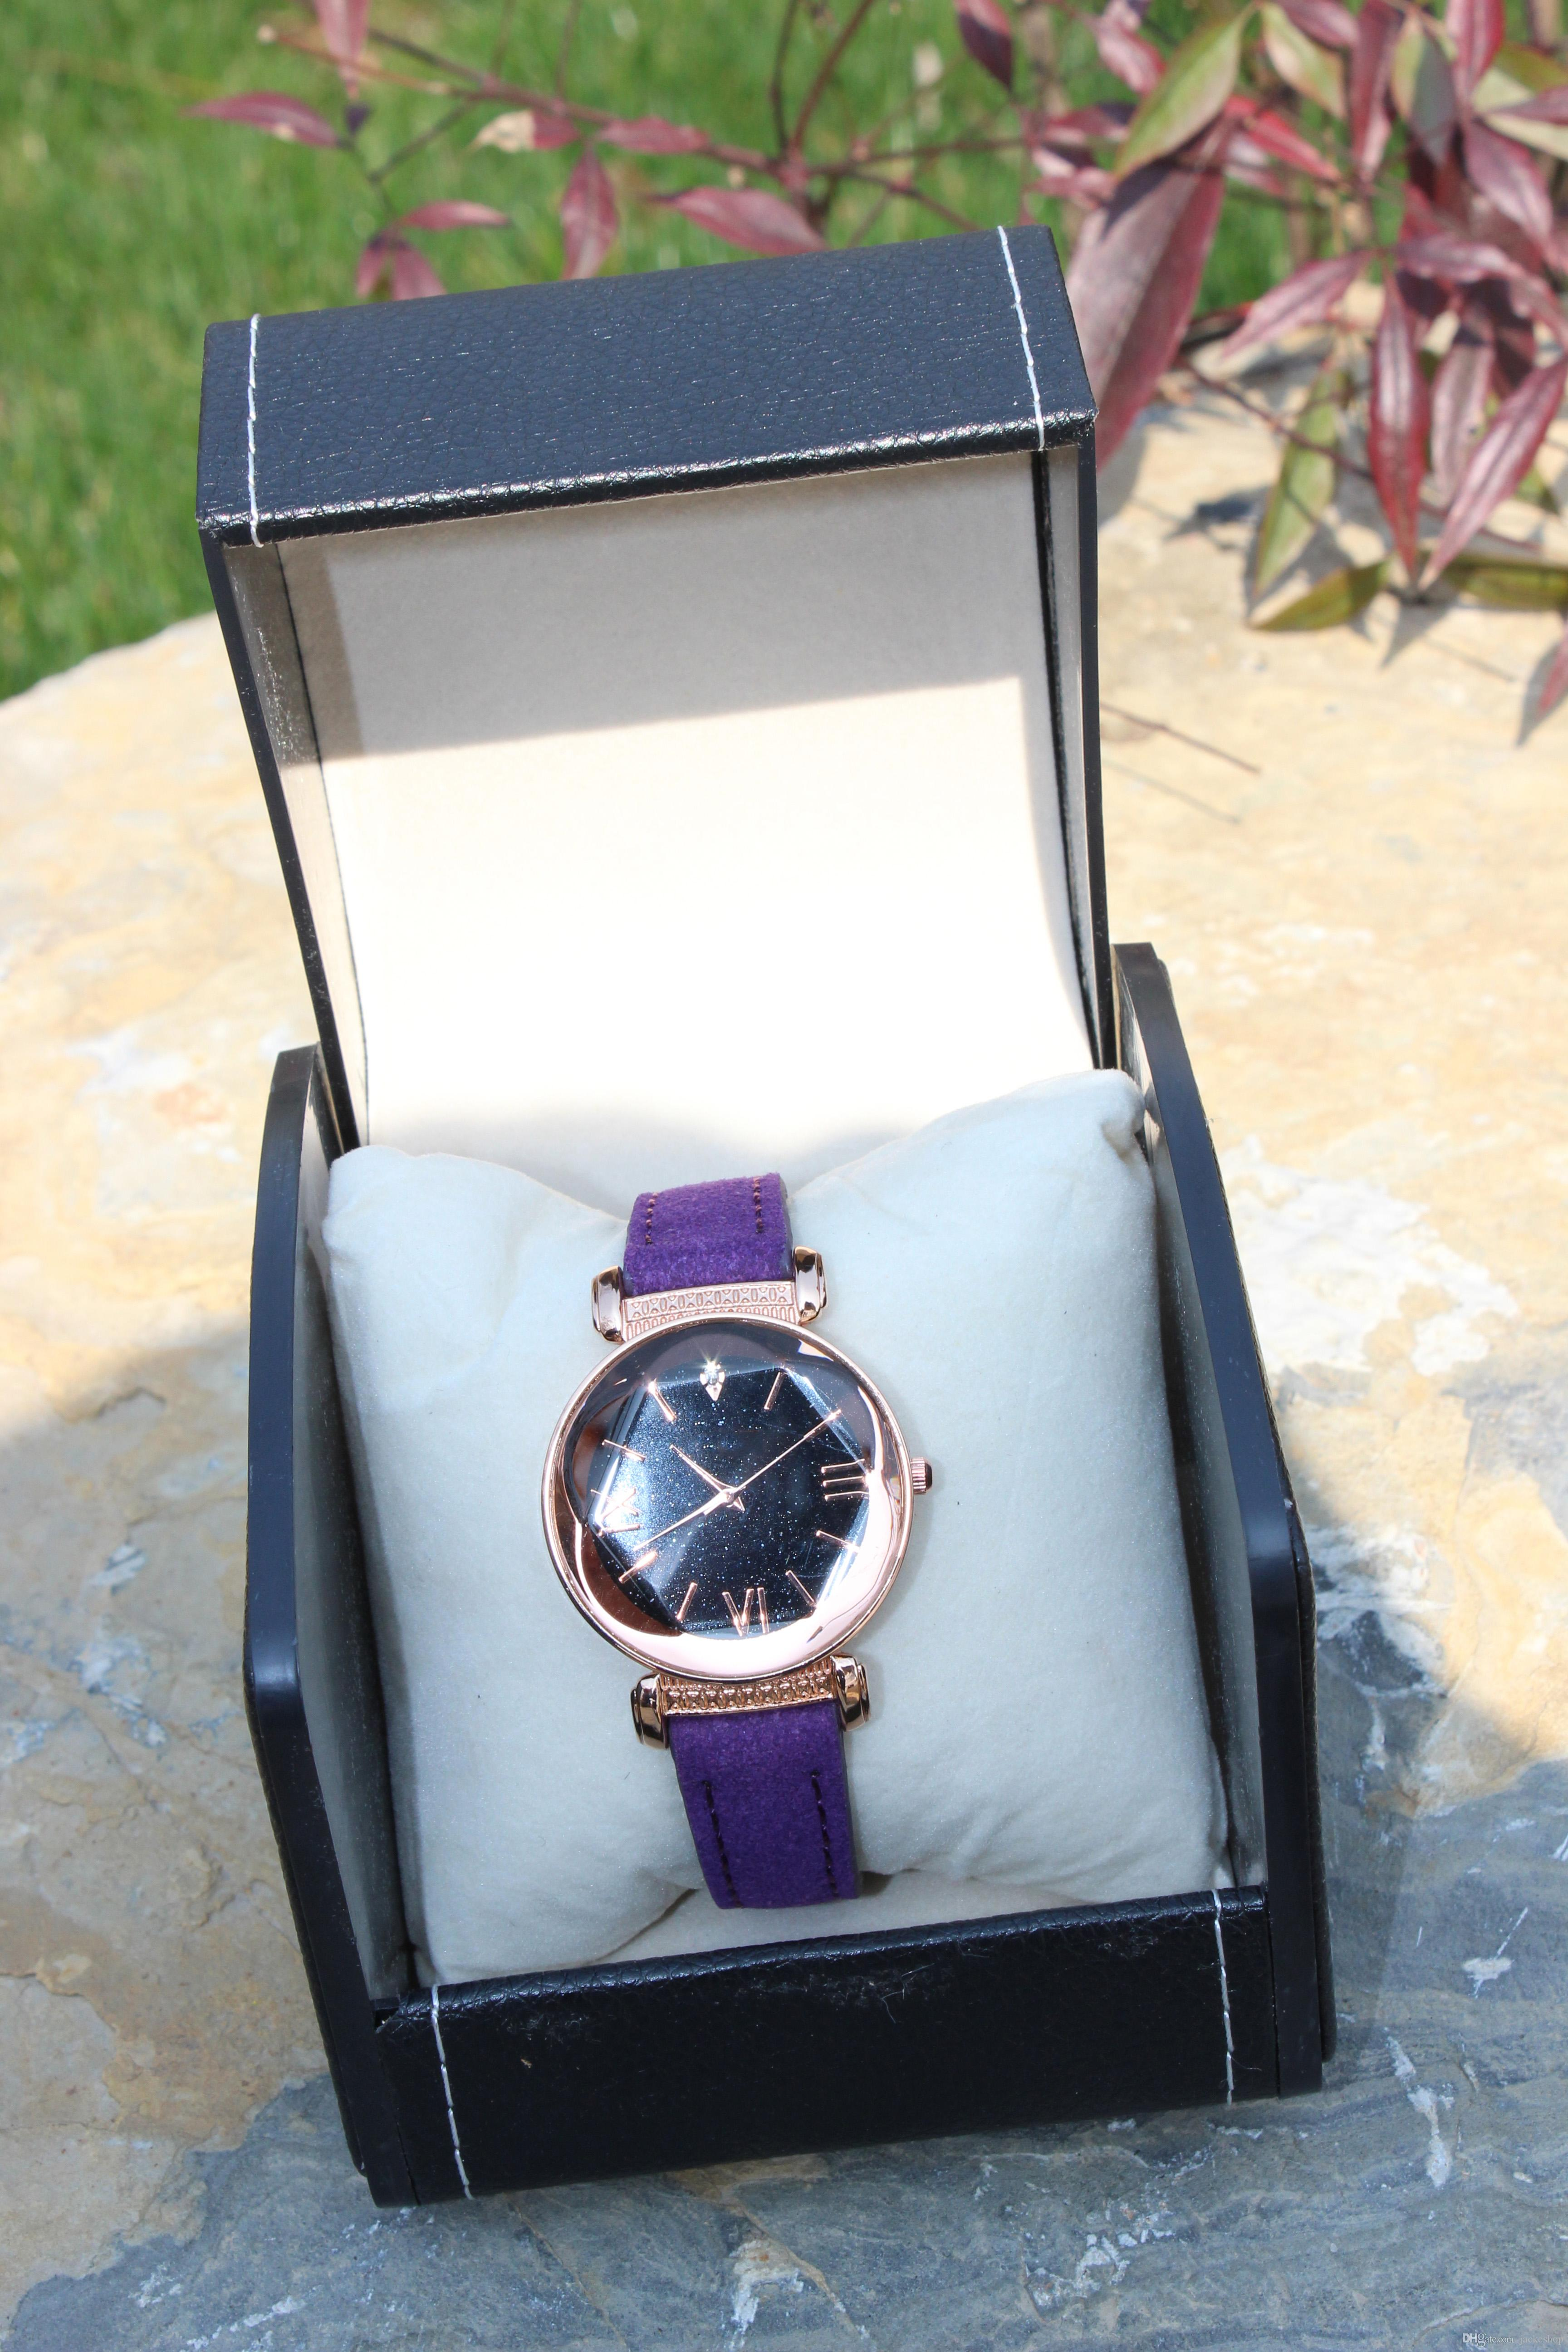 42dd34490 New Ladies Watches Women Watches Elegant Minimalism Rhinestone Casual  Purple Female Waterproof Clock Wrist Watches Online Wrist Watches Online  Shopping From ...